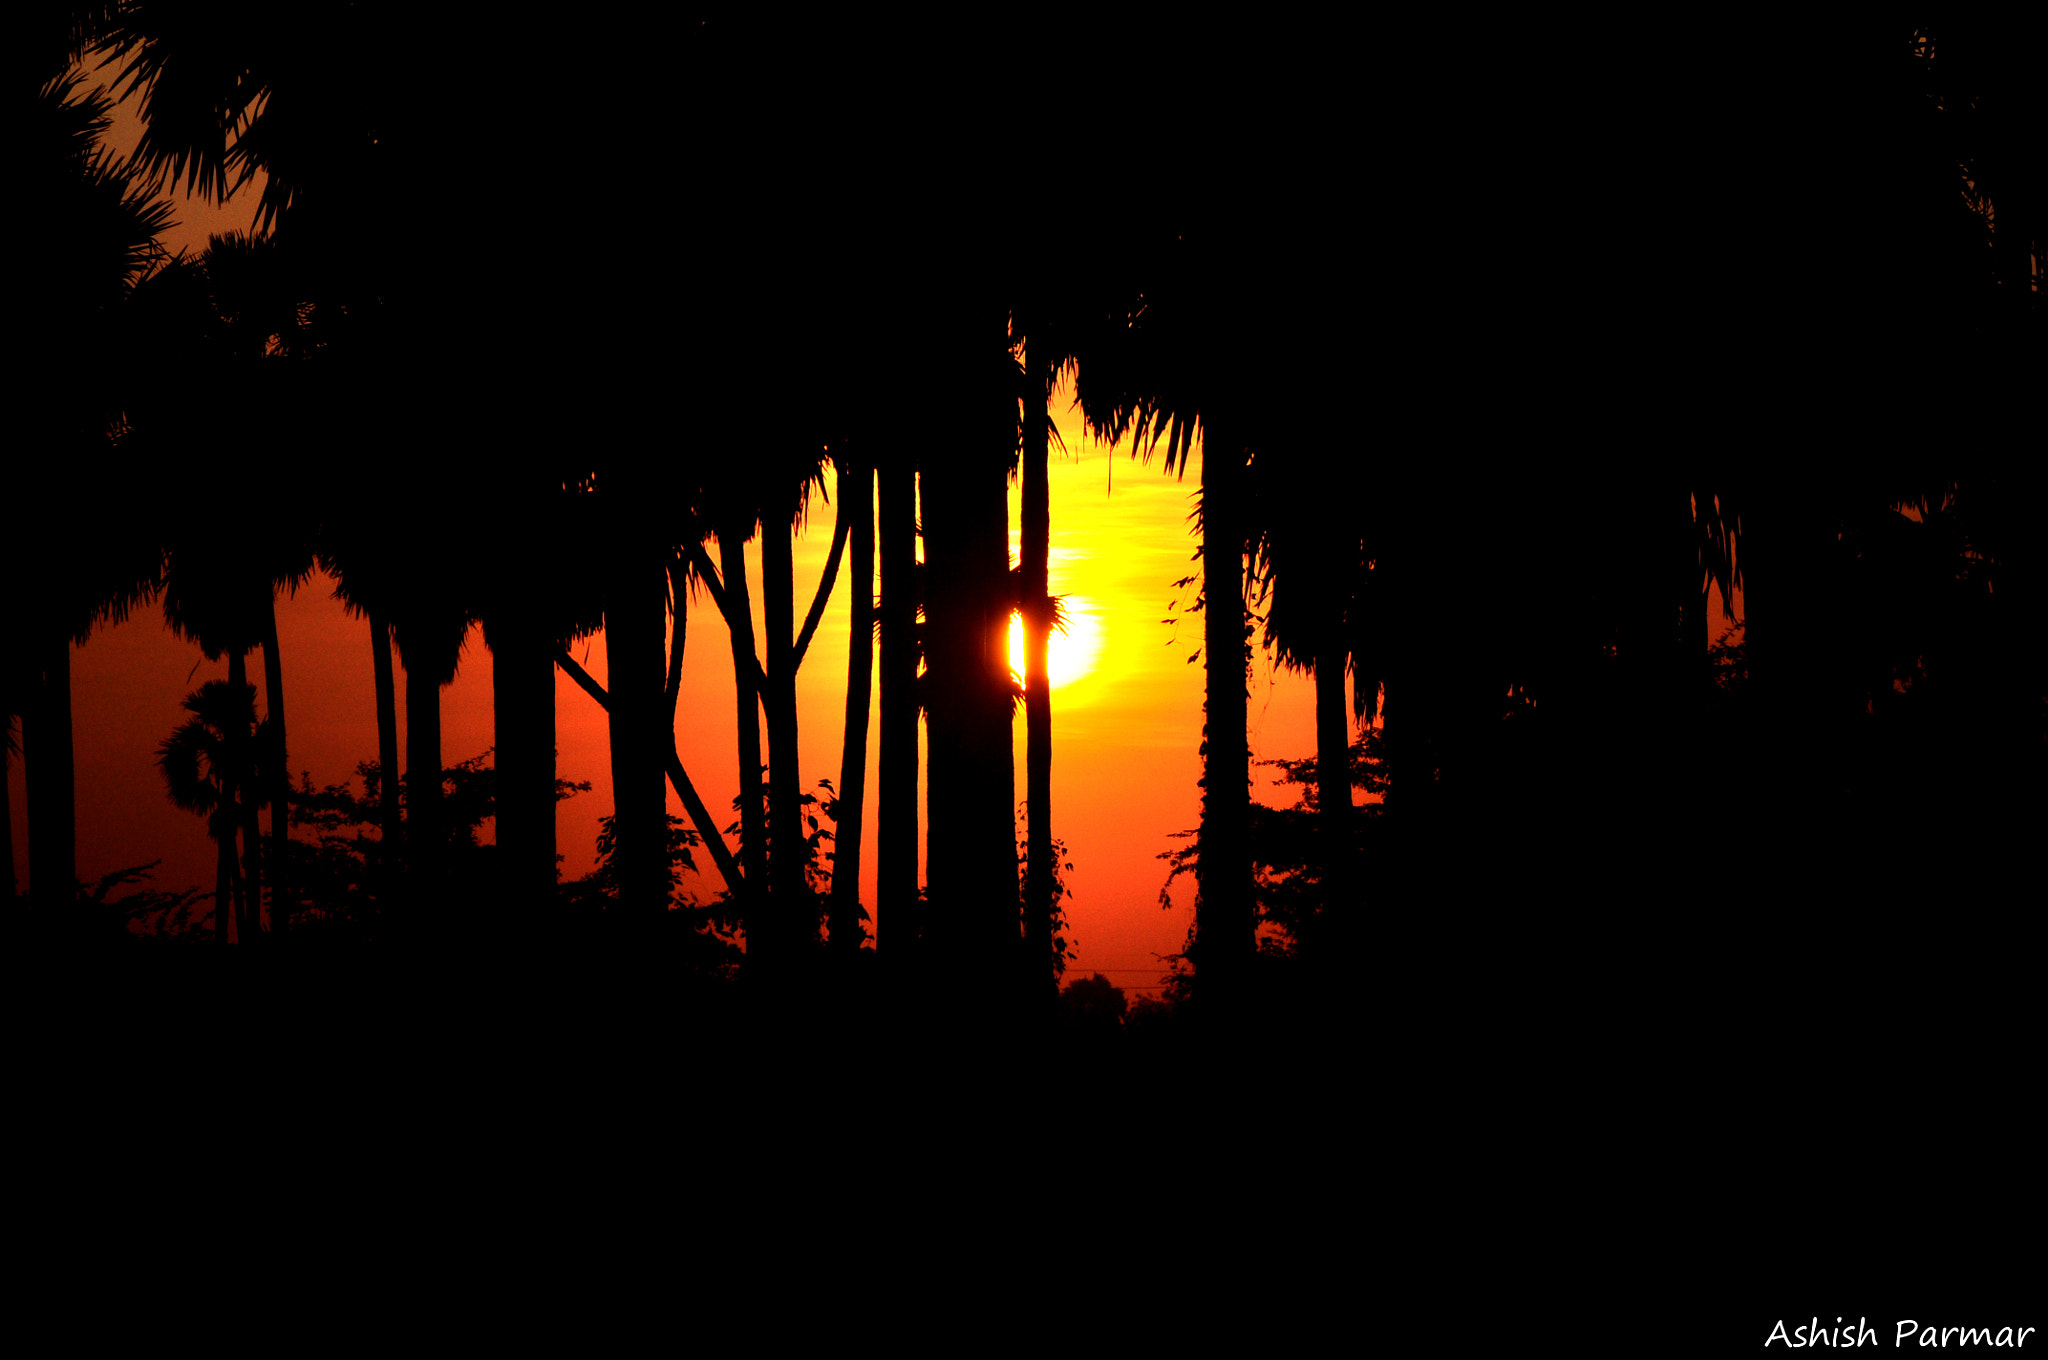 Photograph ~Silhouette Of the evening~  by Ashish Parmar on 500px